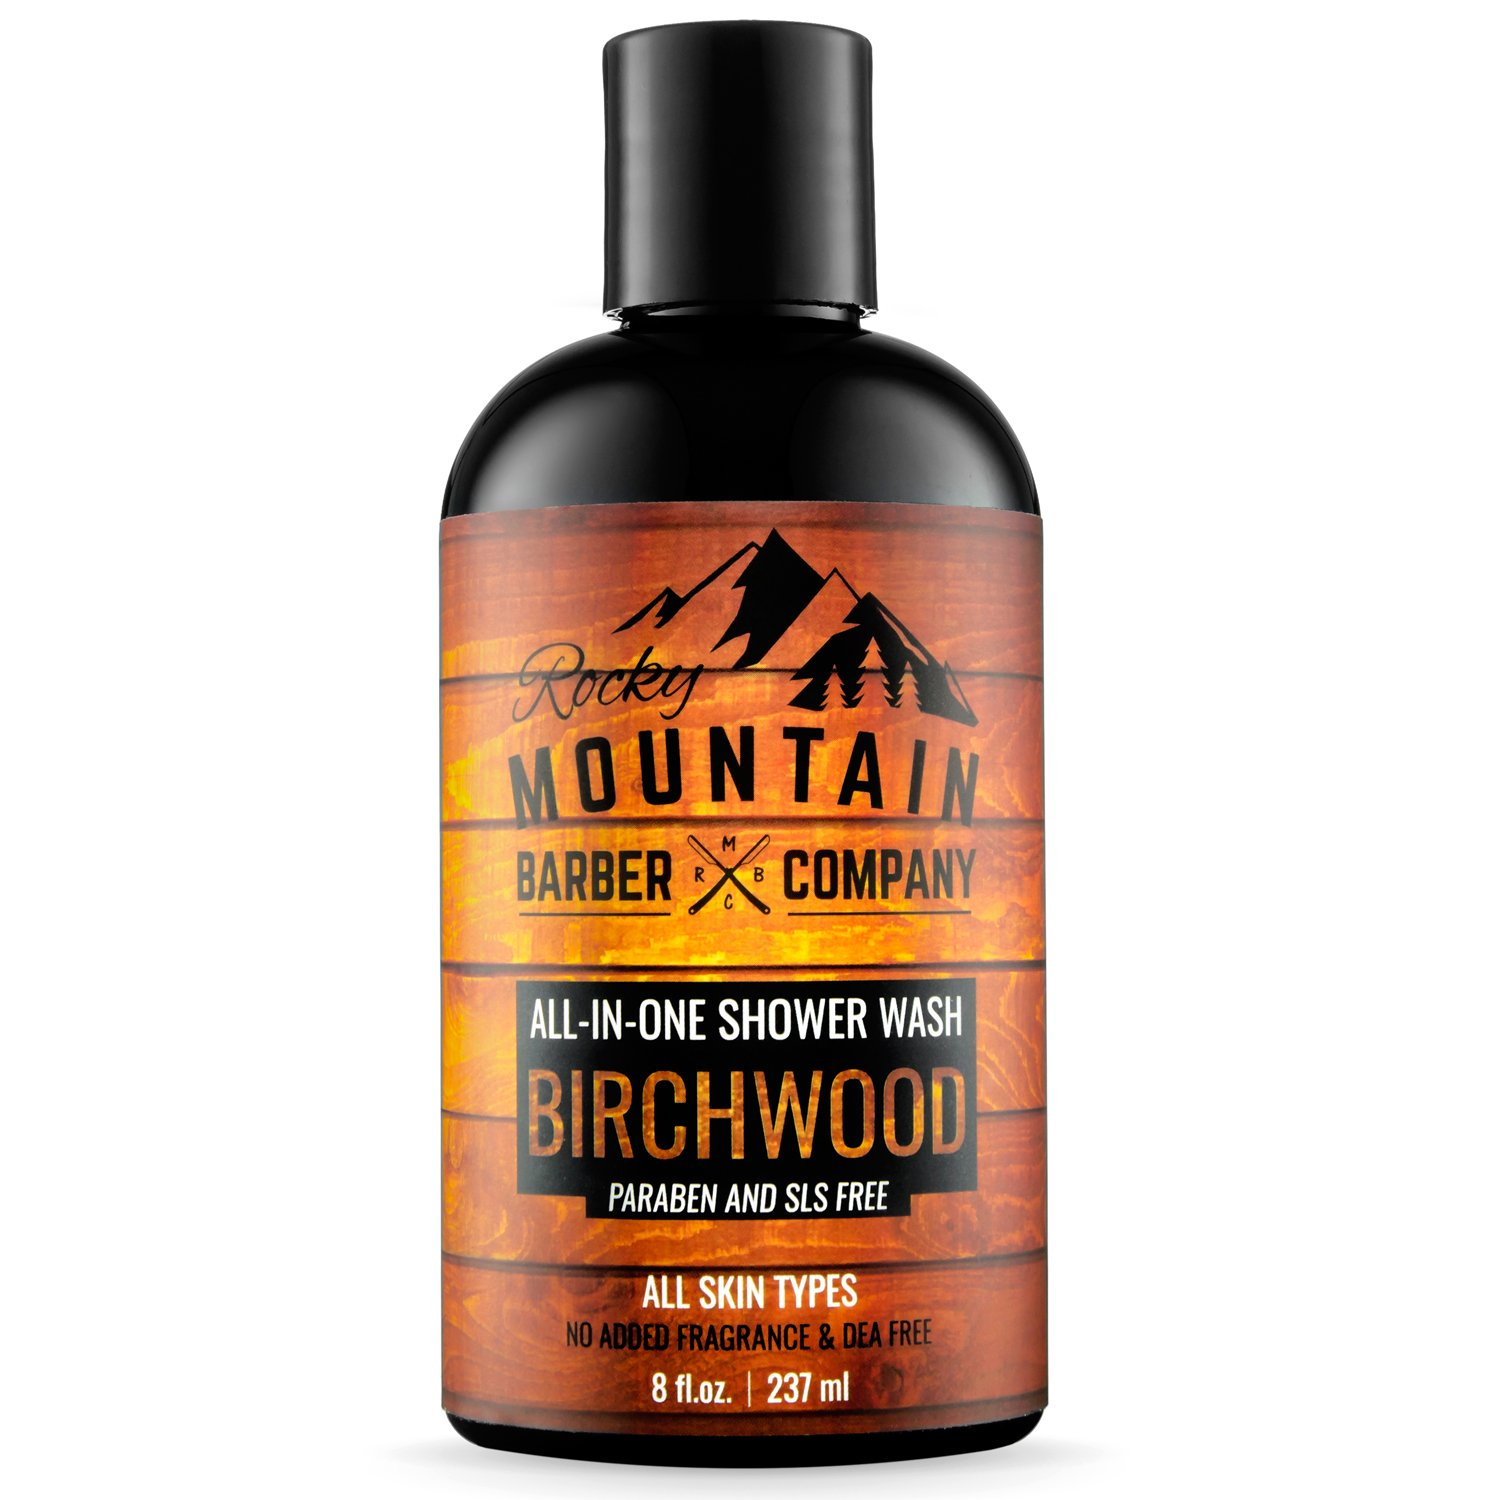 All-in-One Shower Wash for Men - Canadian Made Shampoo, Body Wash, Conditioner, Face Wash & Beard Wash with Essential Oils - Birchwood Scent - 8 oz